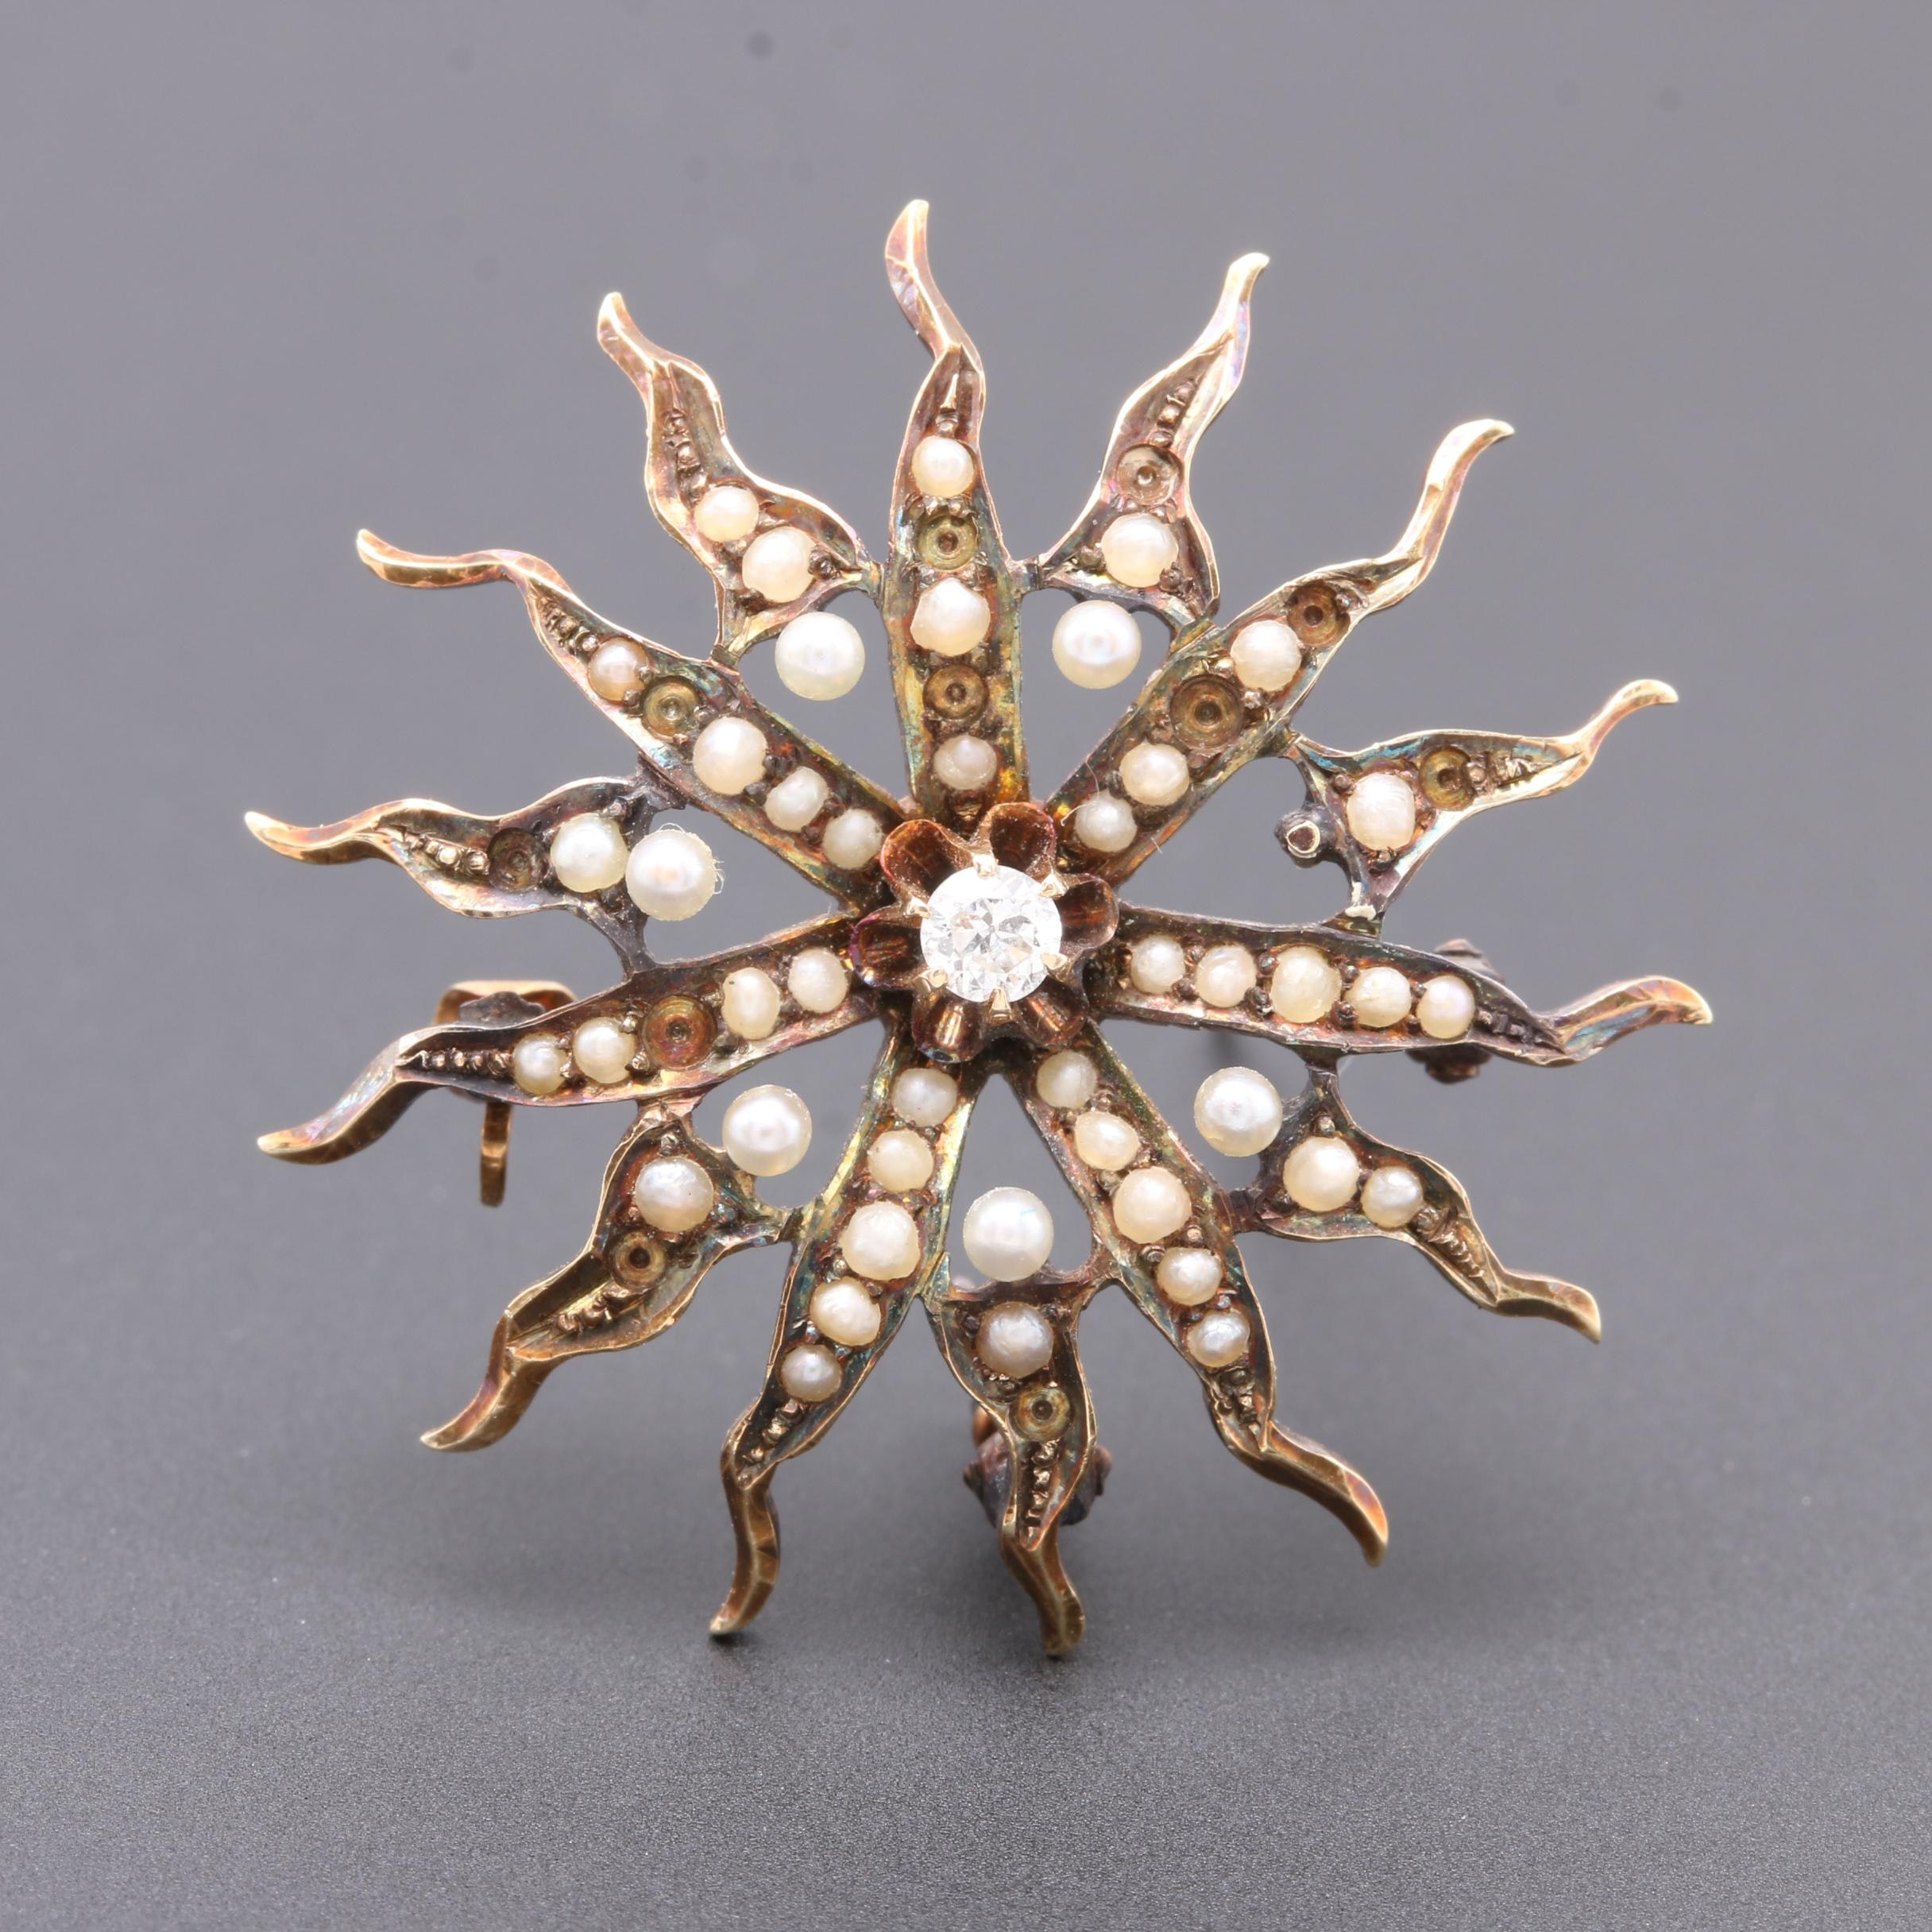 Circa 1890-1900 14K Yellow Gold Diamond and Seed Pearl Brooch